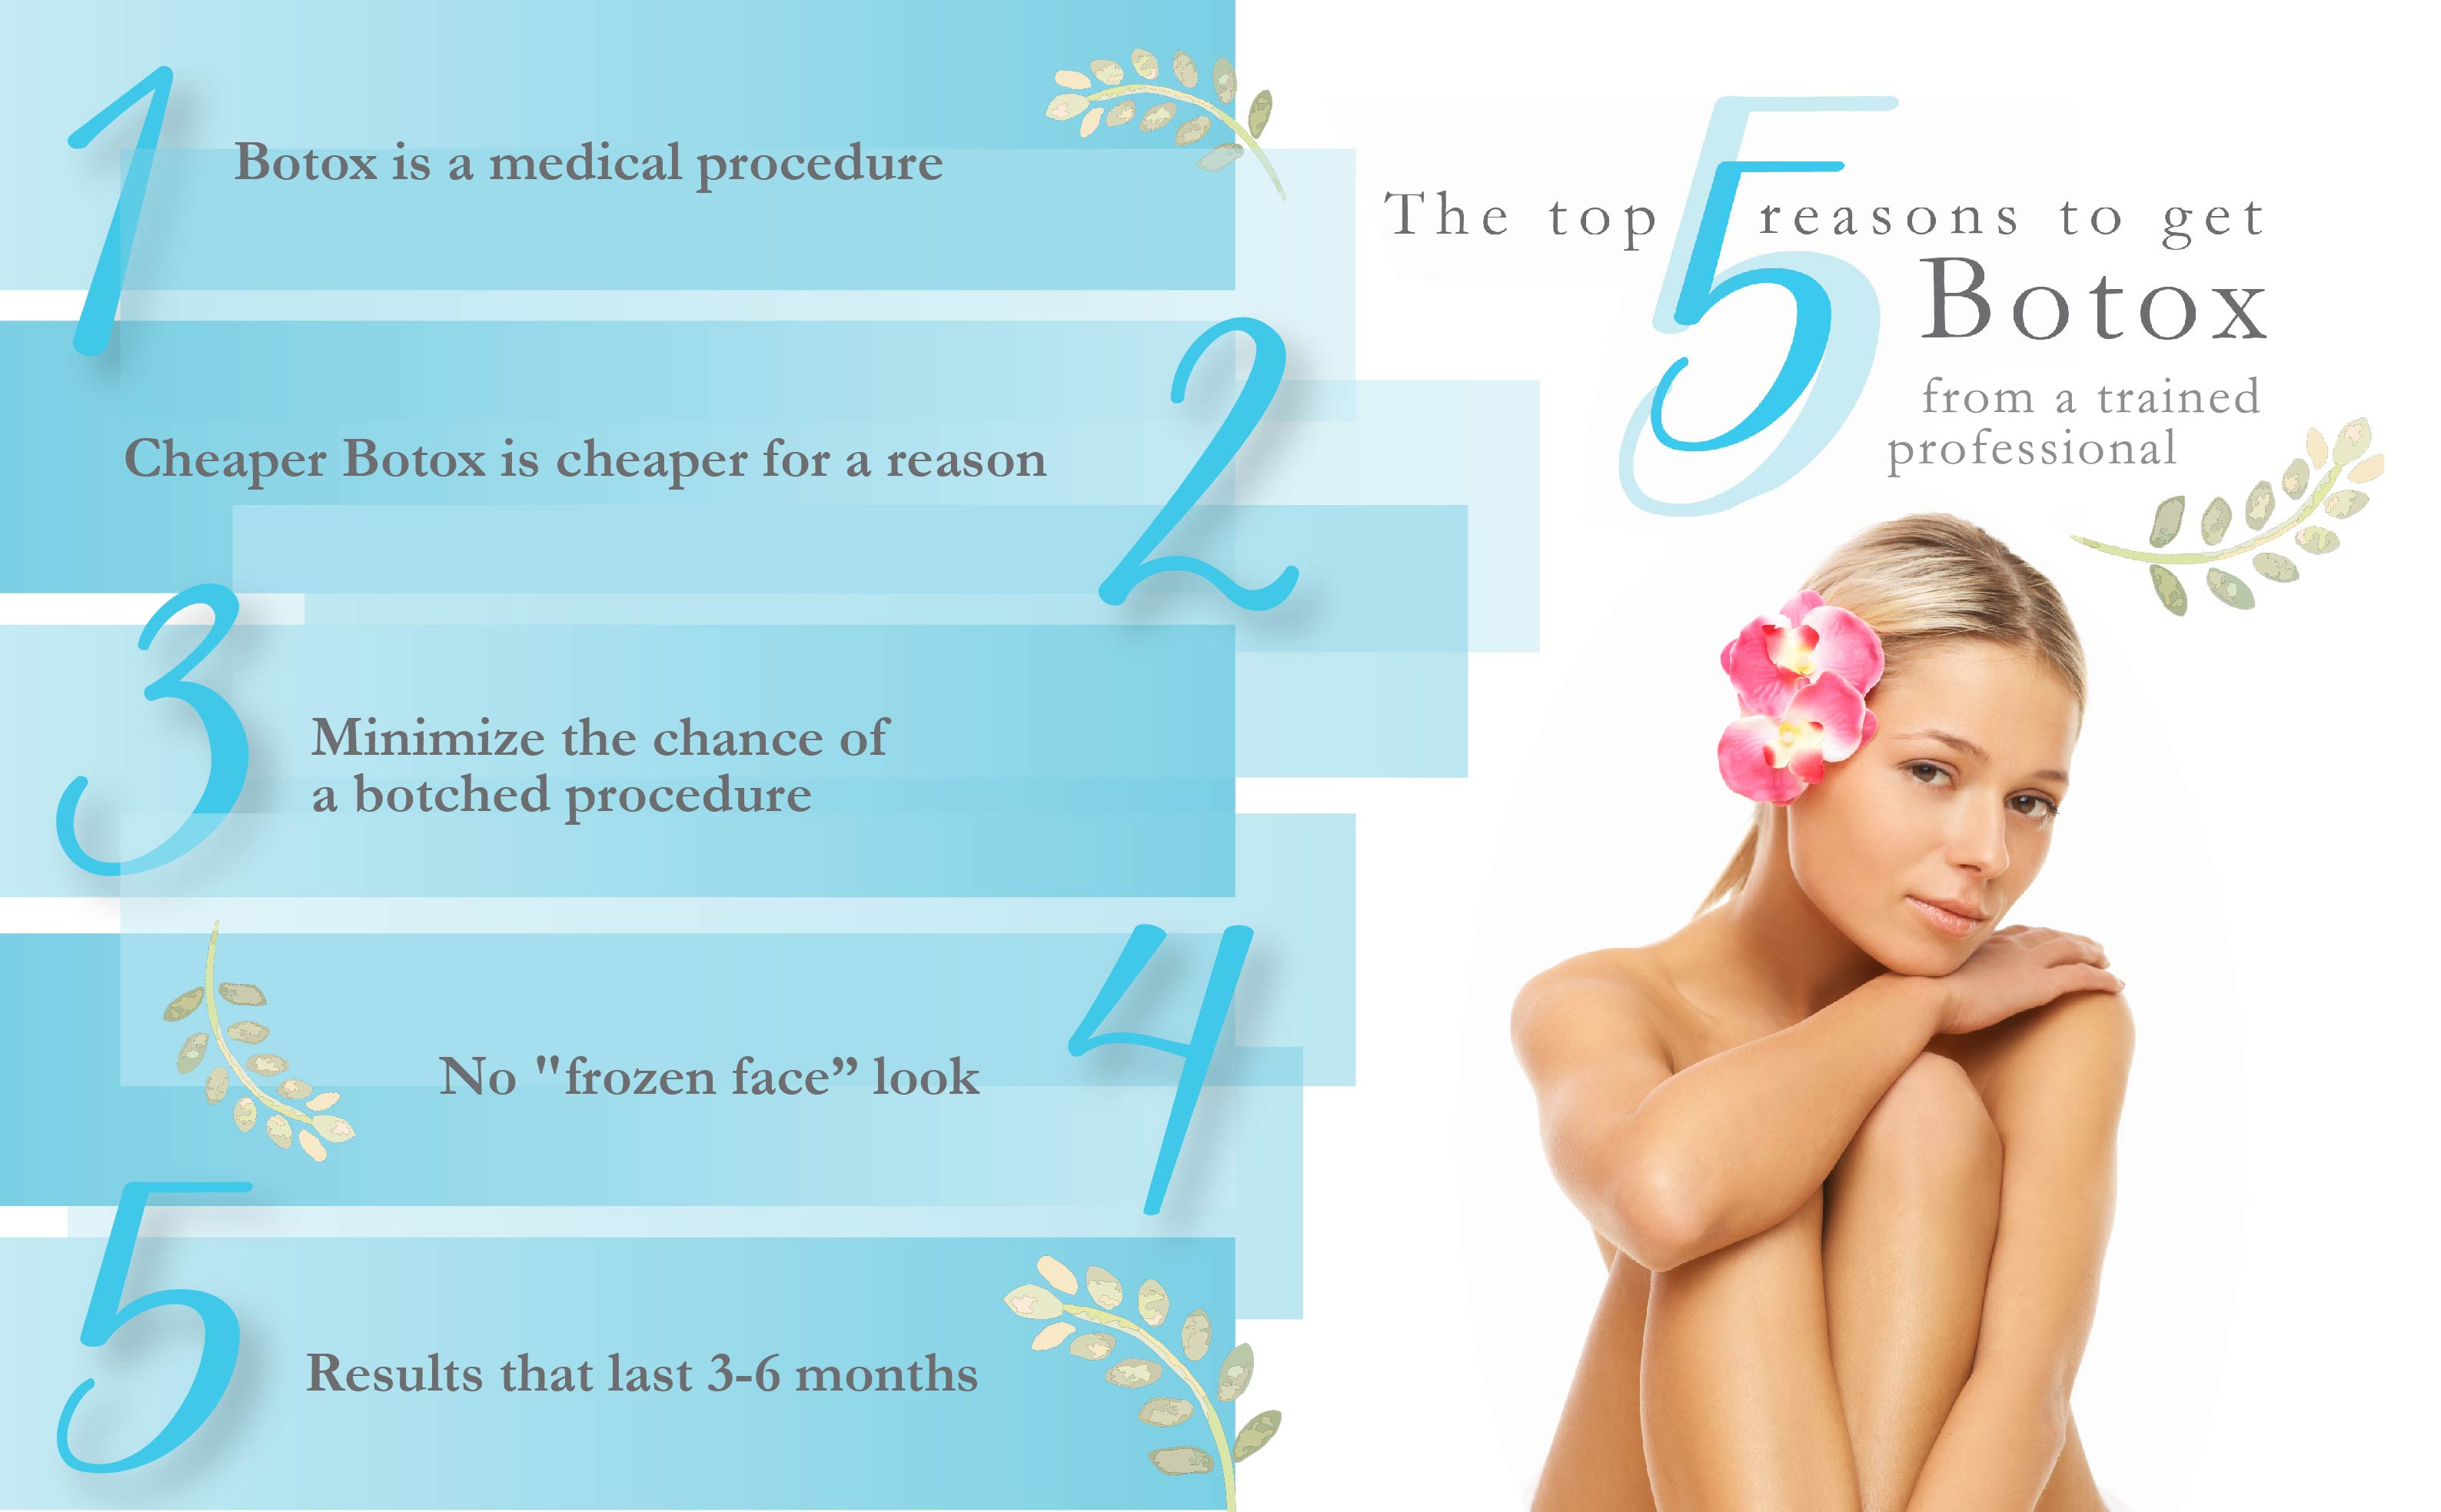 Top reasons to get Botox